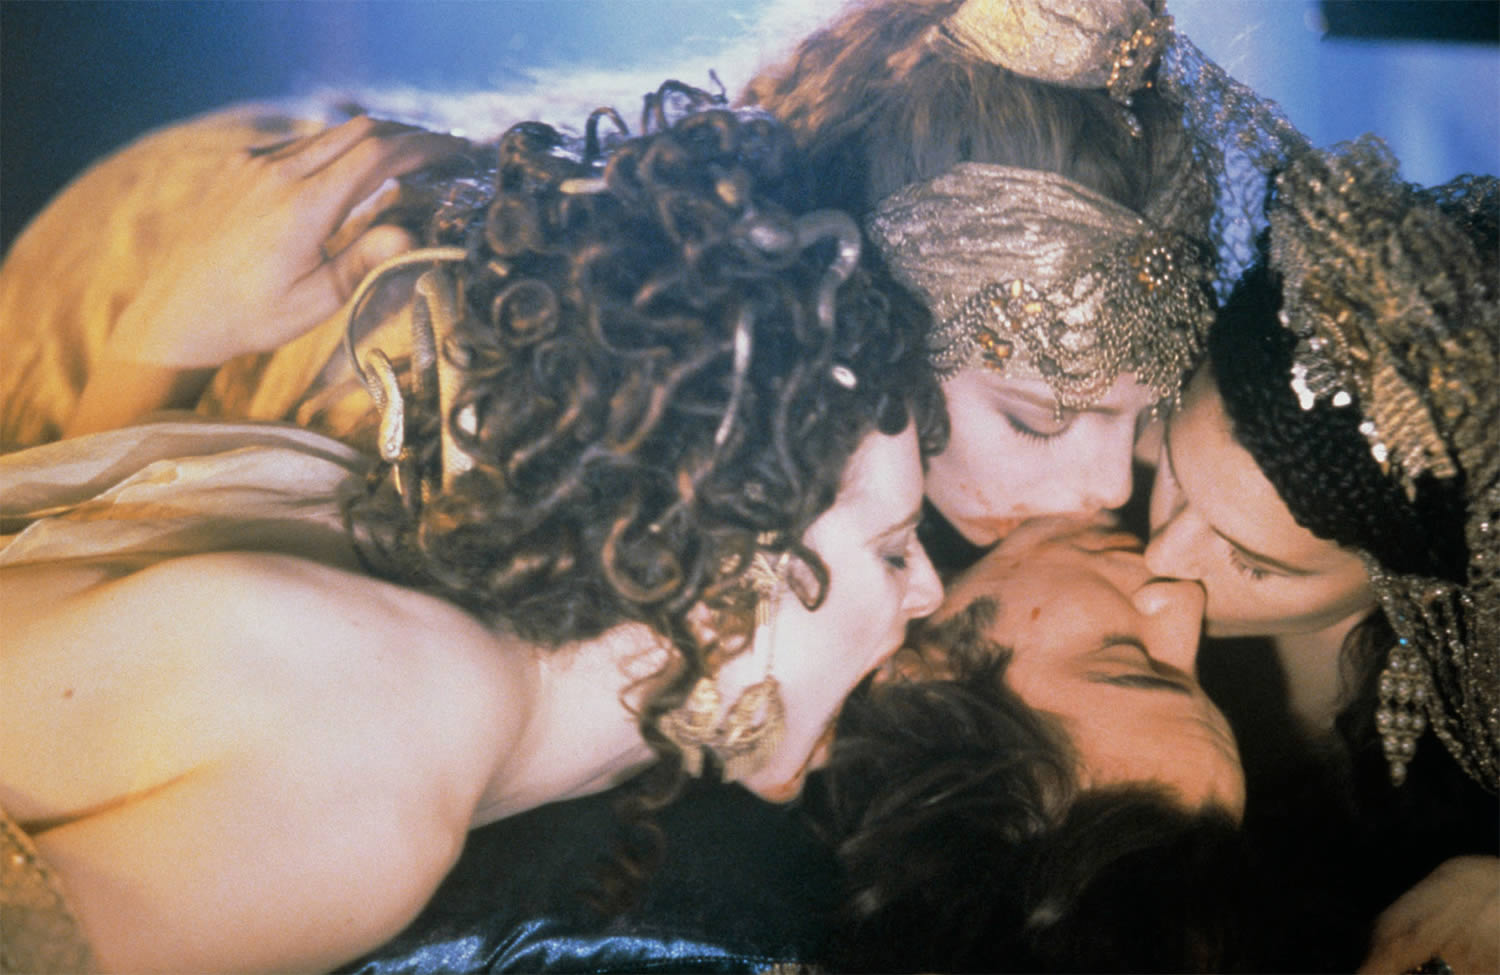 keanu reeves seduced by the brides (including monica bellucci) in bram stoker's dracula